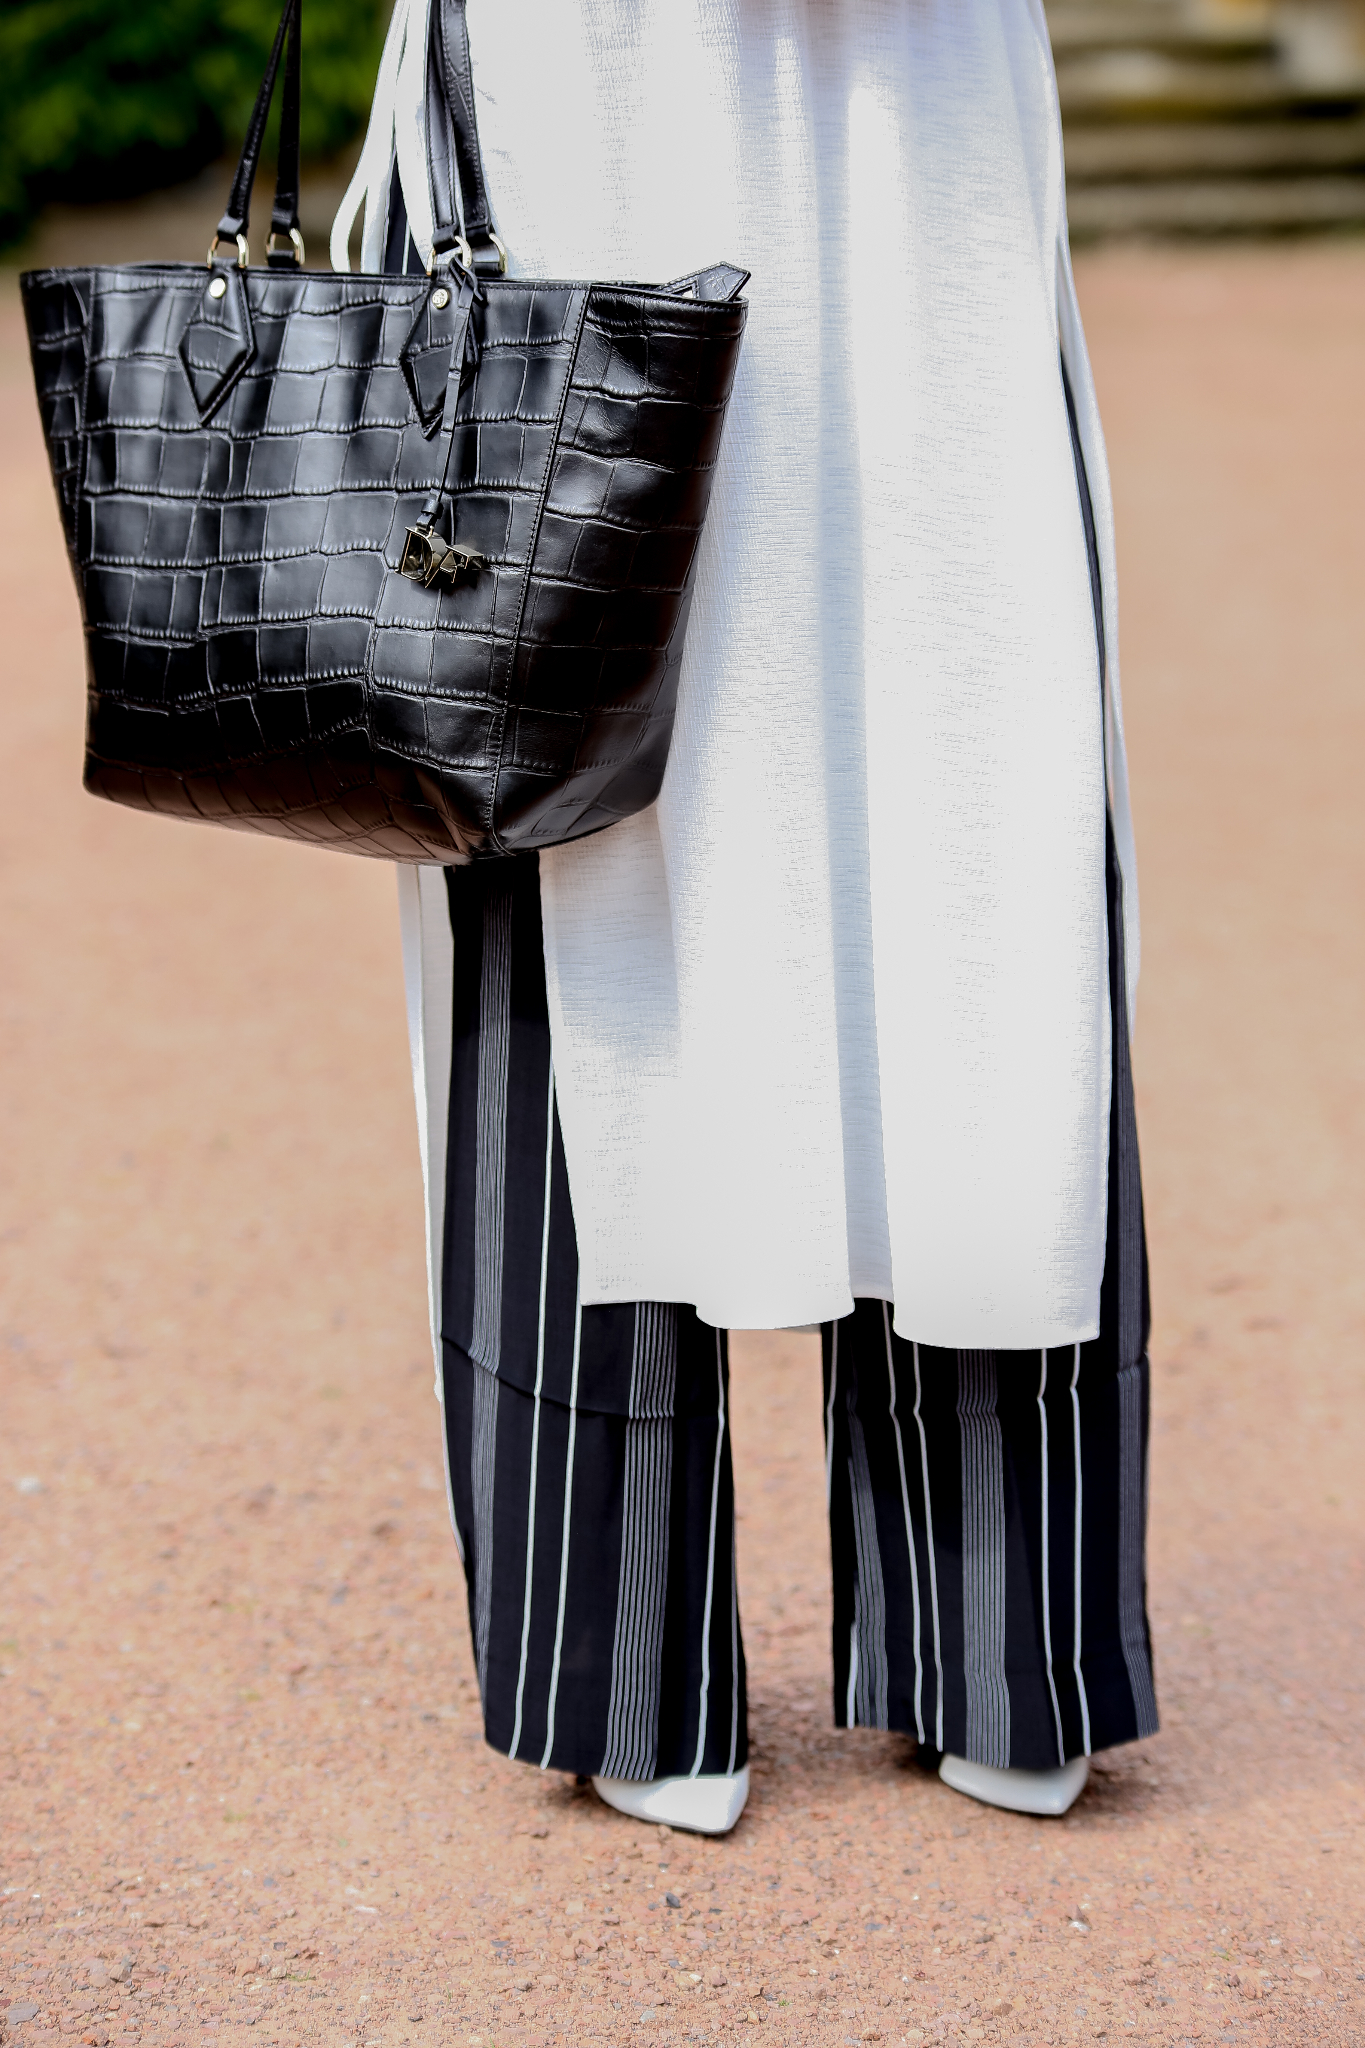 Fashion_Outfit_Long_Blouse_Striped_Palazzo_Pants_MOD - by Monique-5